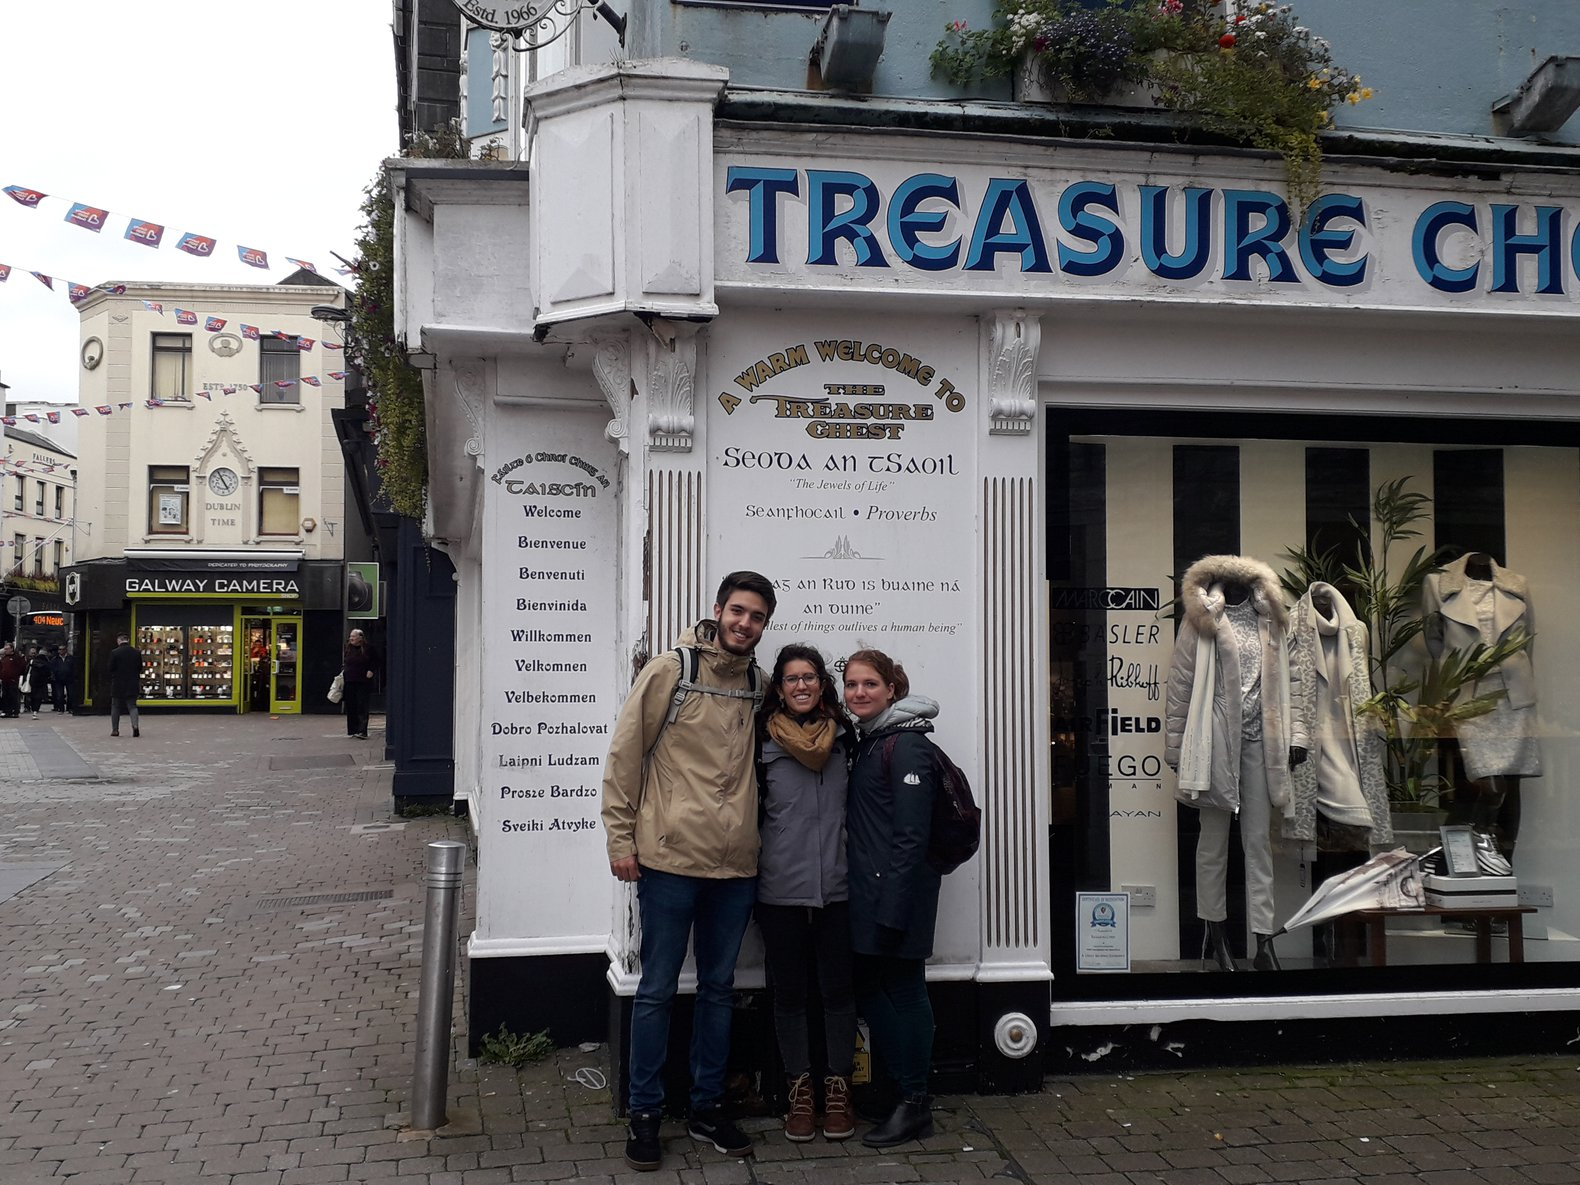 Treasure Chest - a corner of Shop Street where Ed Sheeran used to play